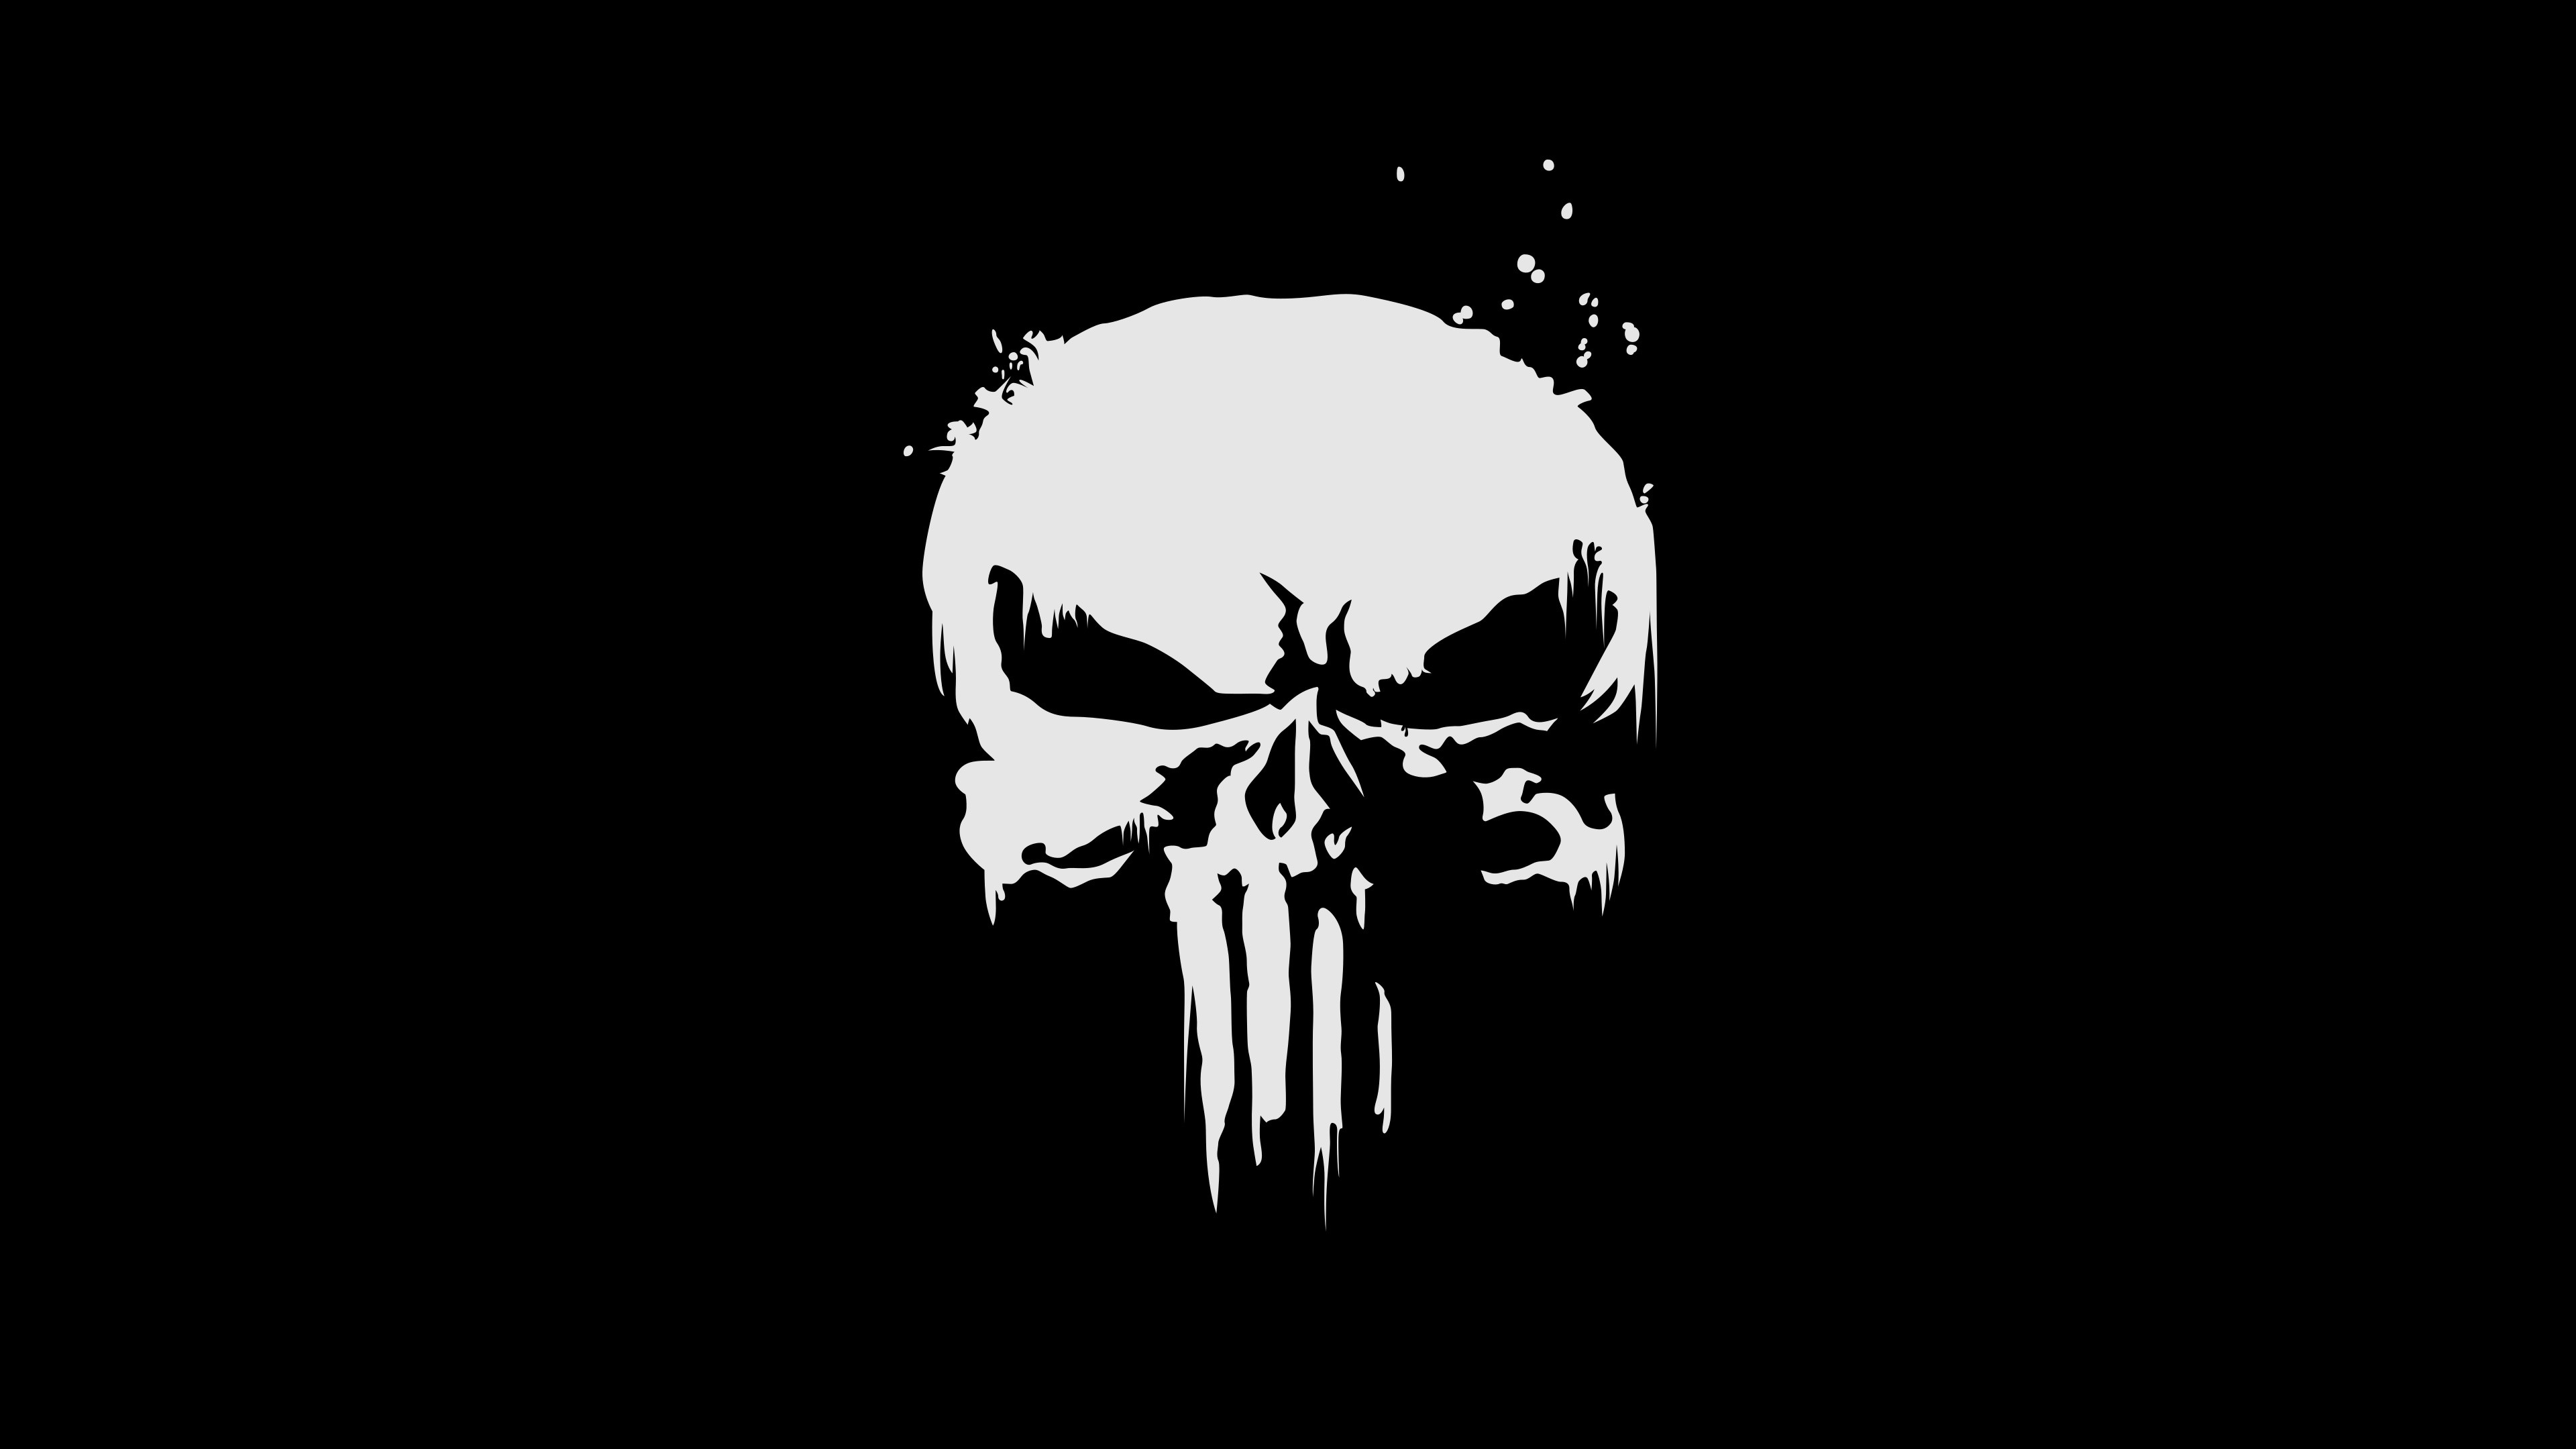 3840x2160 The Punisher Wallpaper